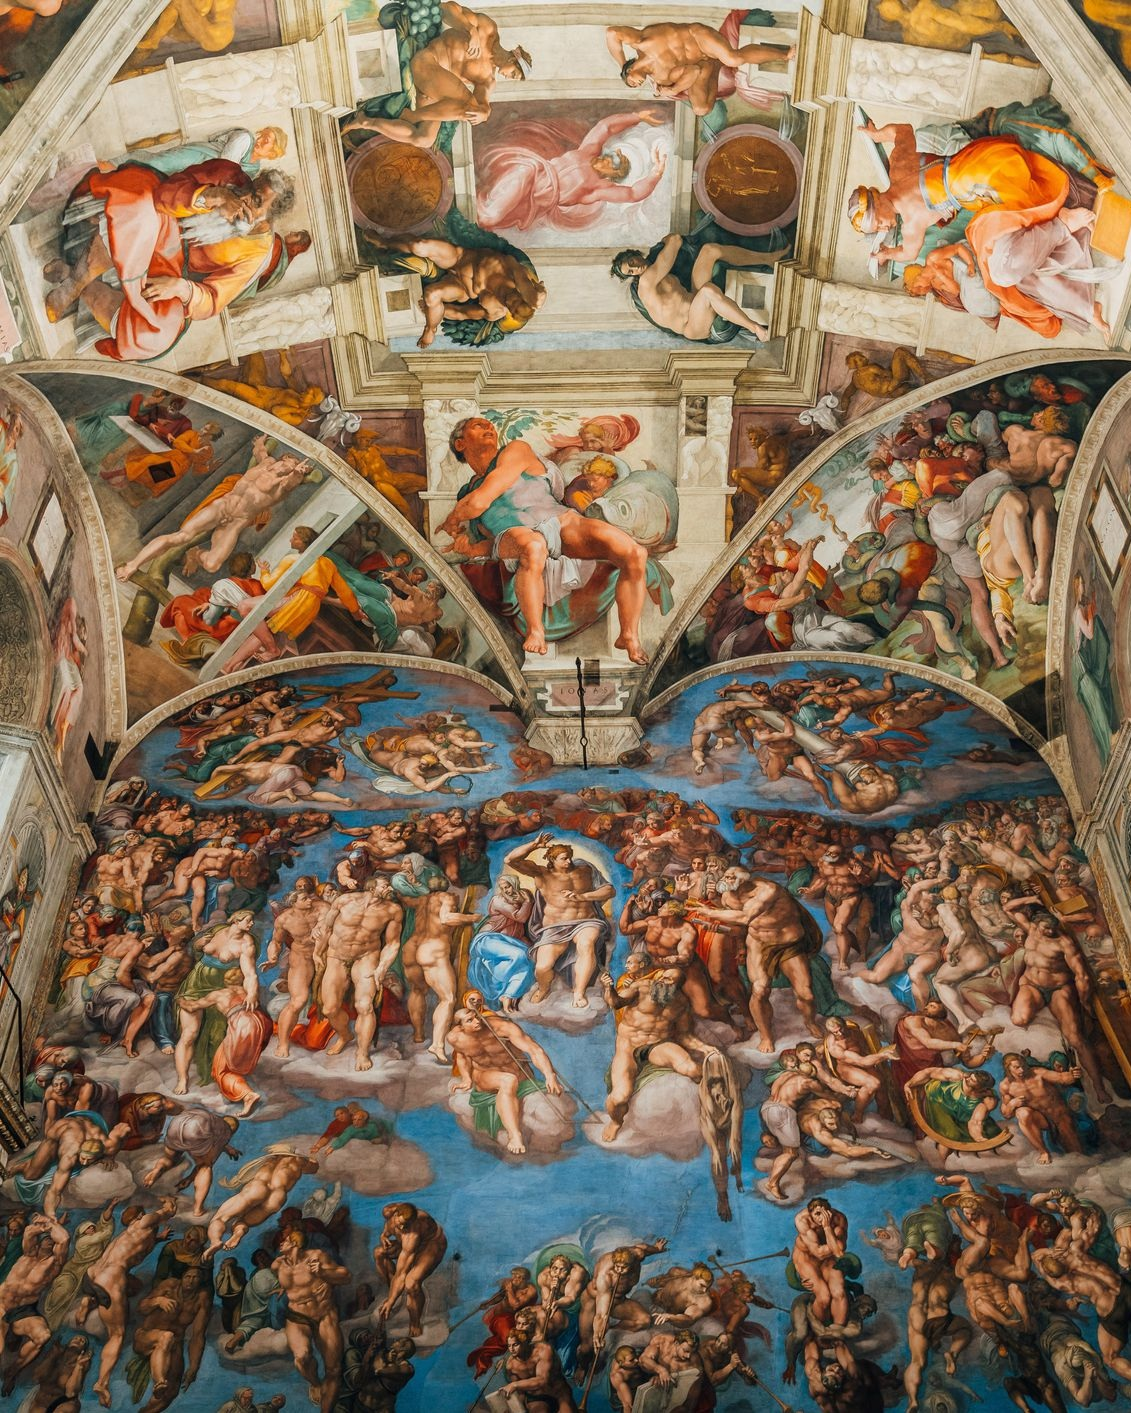 The Sistine Chapel (Vatican City) - Okay, this is not a single work, but an entire chapel including a series of frescos around the walls painted by Old Masters like Perugino and Botticelli, the iconic ceiling by Michelangelo, and the sublime Last Judgment altar wall also painted by Michelangelo–twenty years after his triumph on the ceiling. All roads in Italy lead to Rome. All roads in Rome lead to the Vatican. And all roads in the Vatican lead to the Sistine. Go. It's worth it. A picture cannot do it justice.